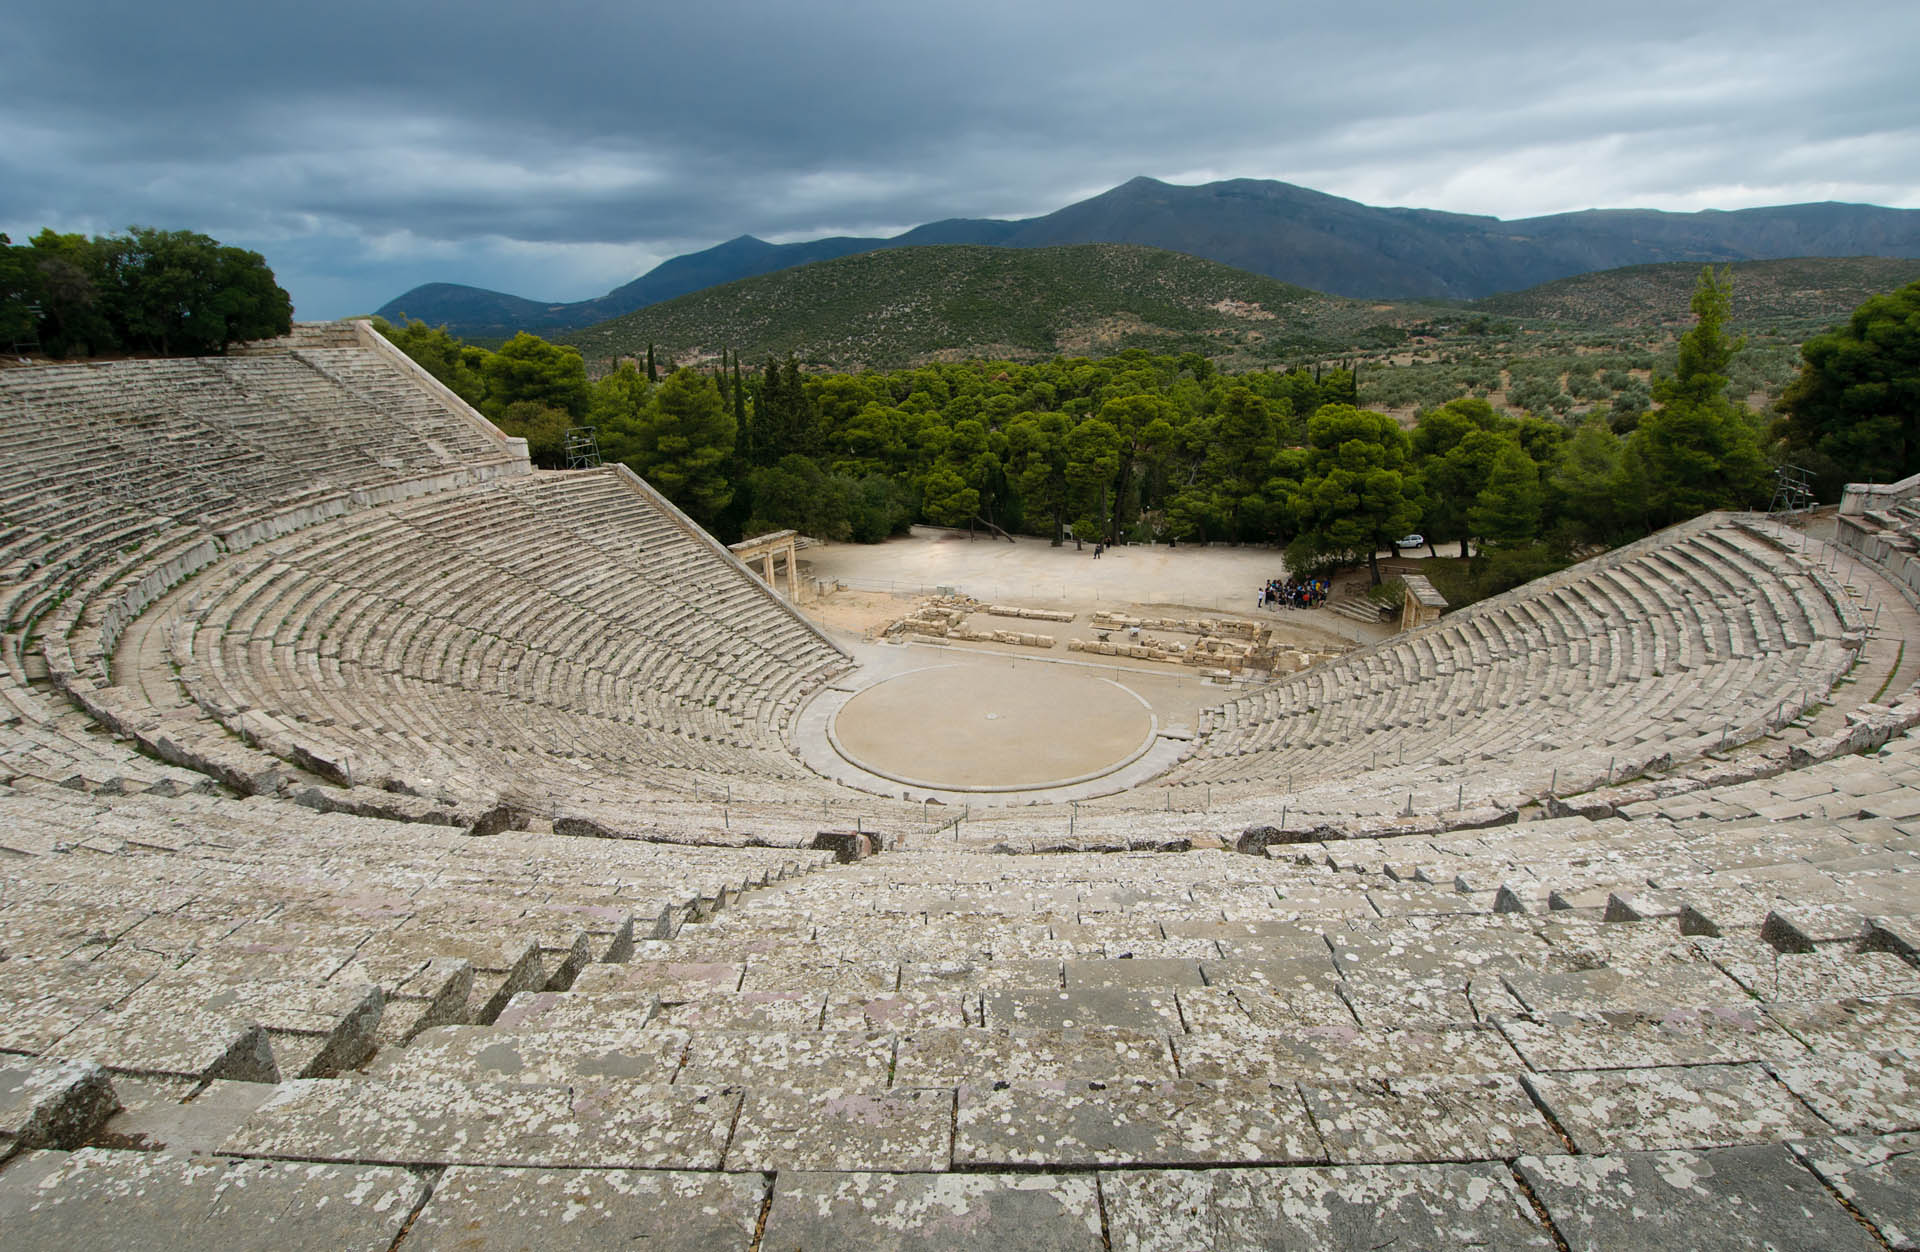 We at Monterrasol Travel welcome you to see Epidaurus during multiday private car tour. Contact us if you would like to customize your tour to Epidaurus.